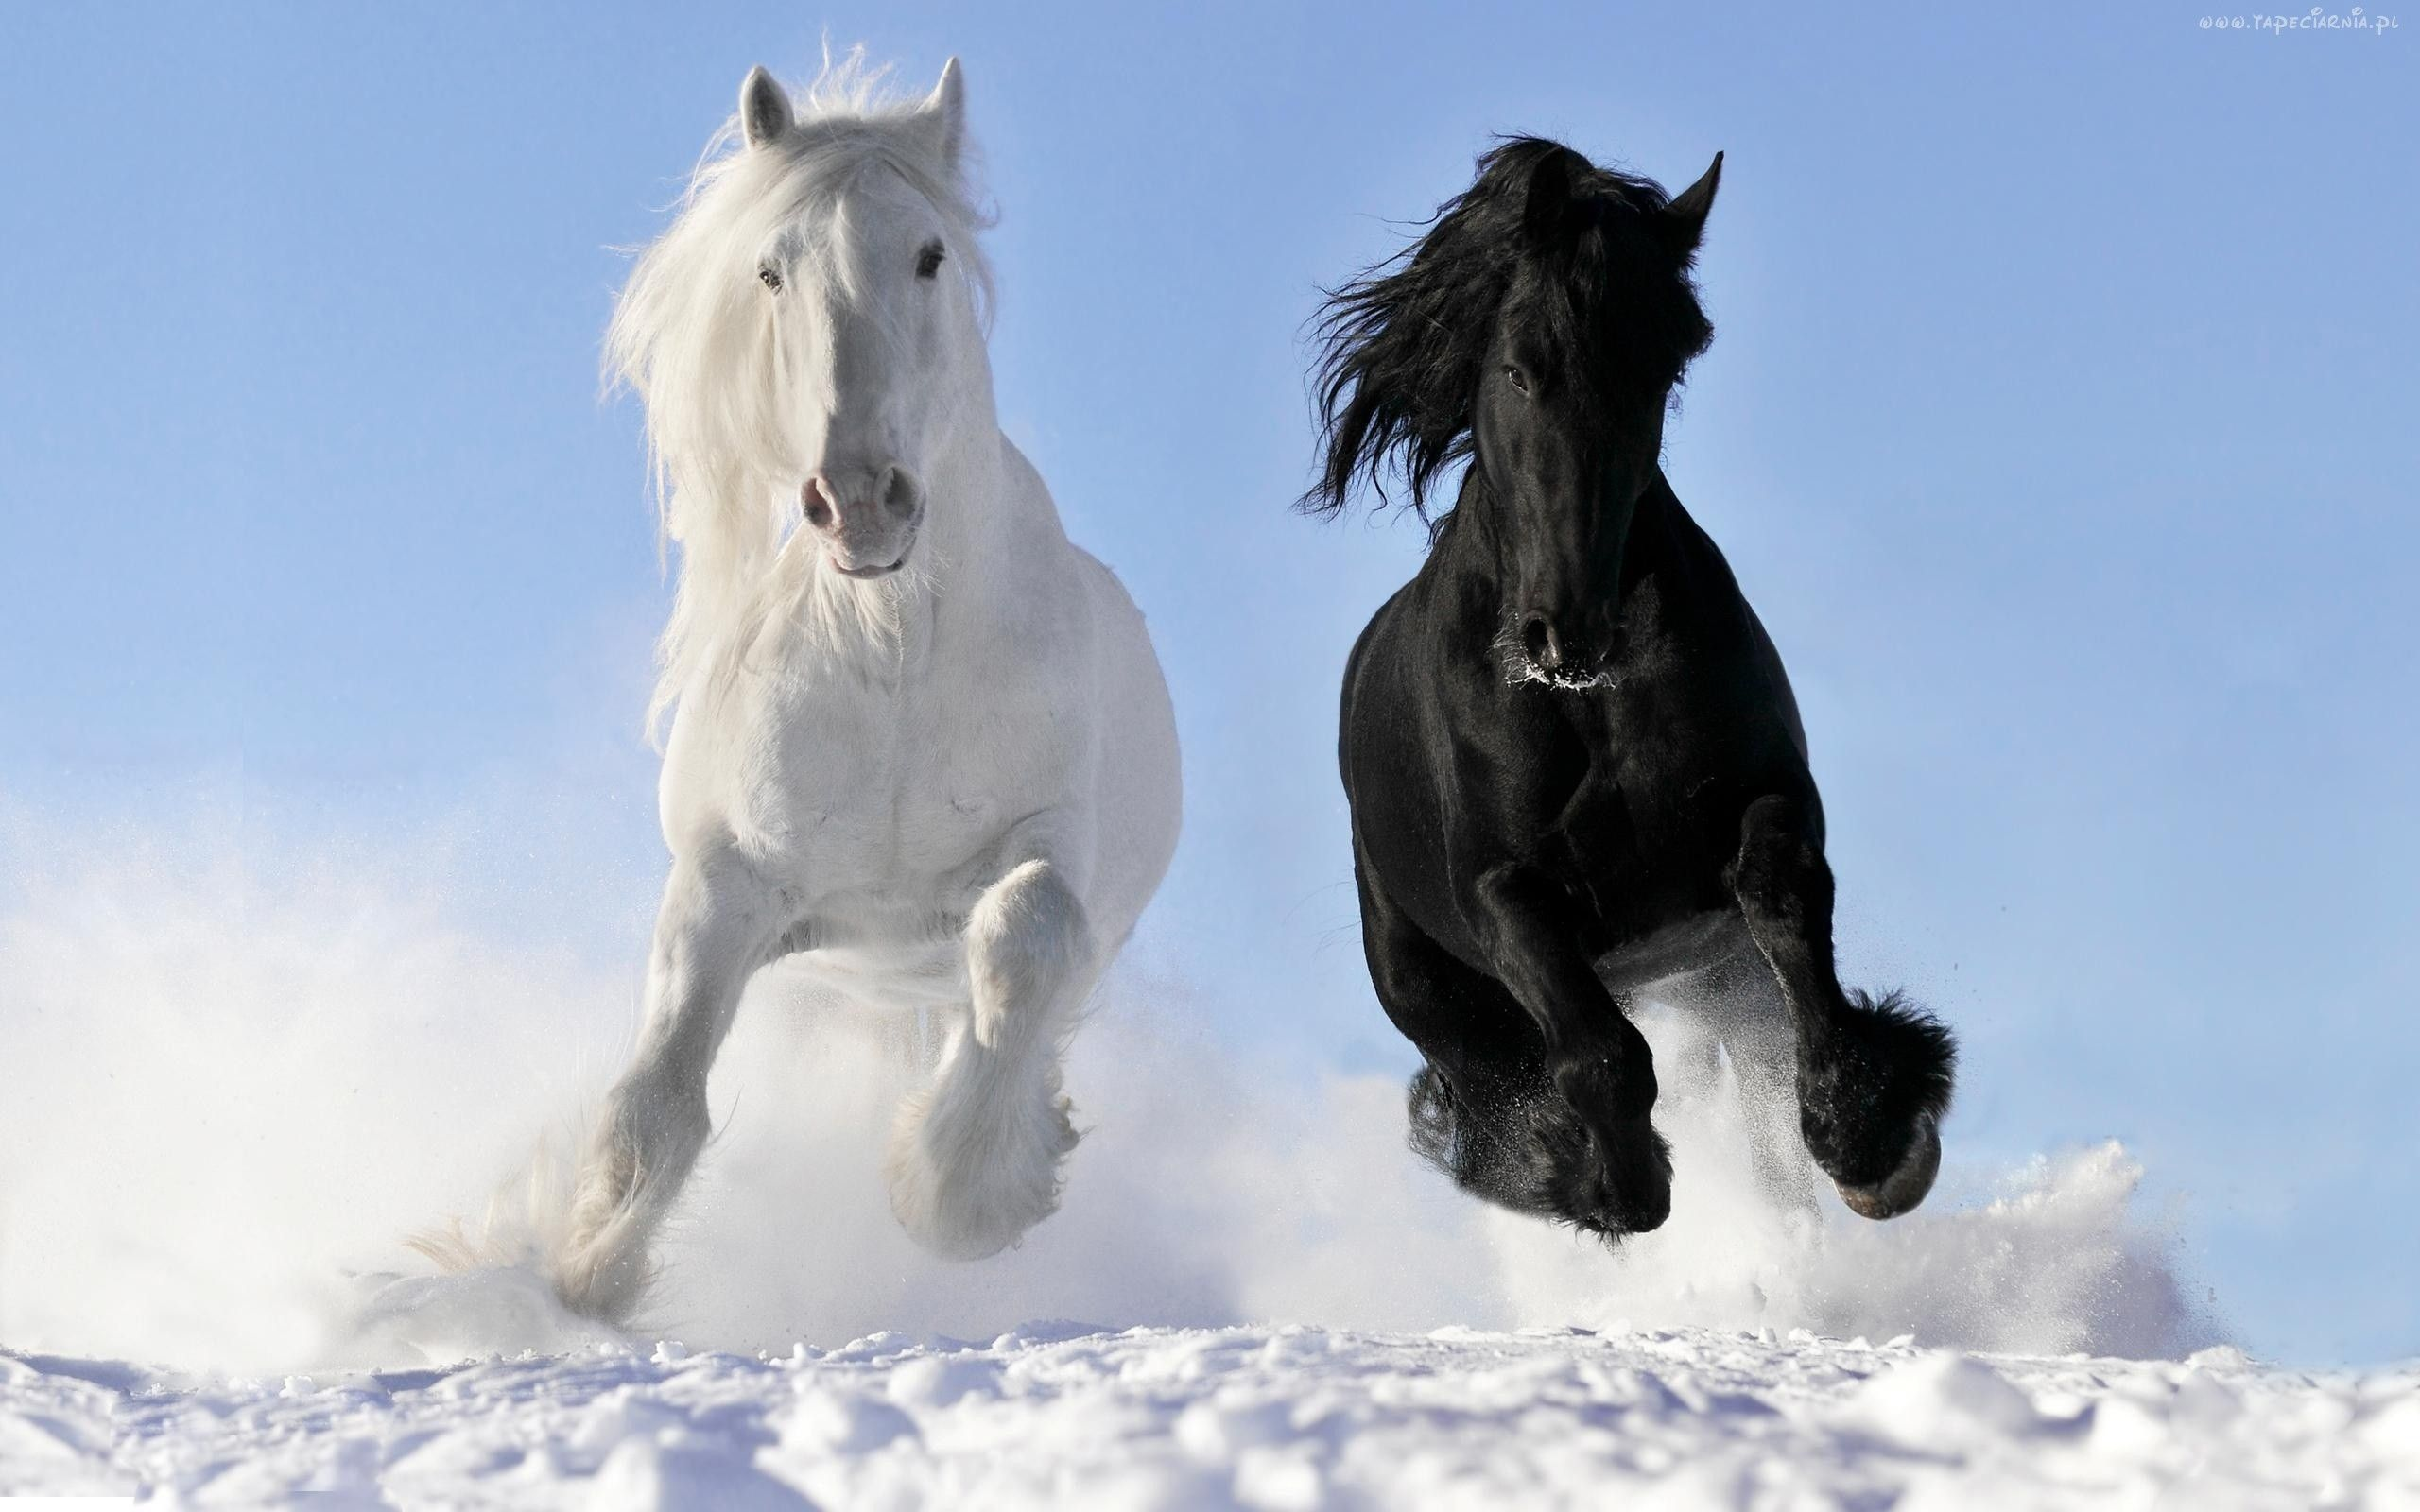 Must see Wallpaper Horse Stunning - d344514c9e8602ba1e42d4641fc33ba2  Collection_465140.jpg